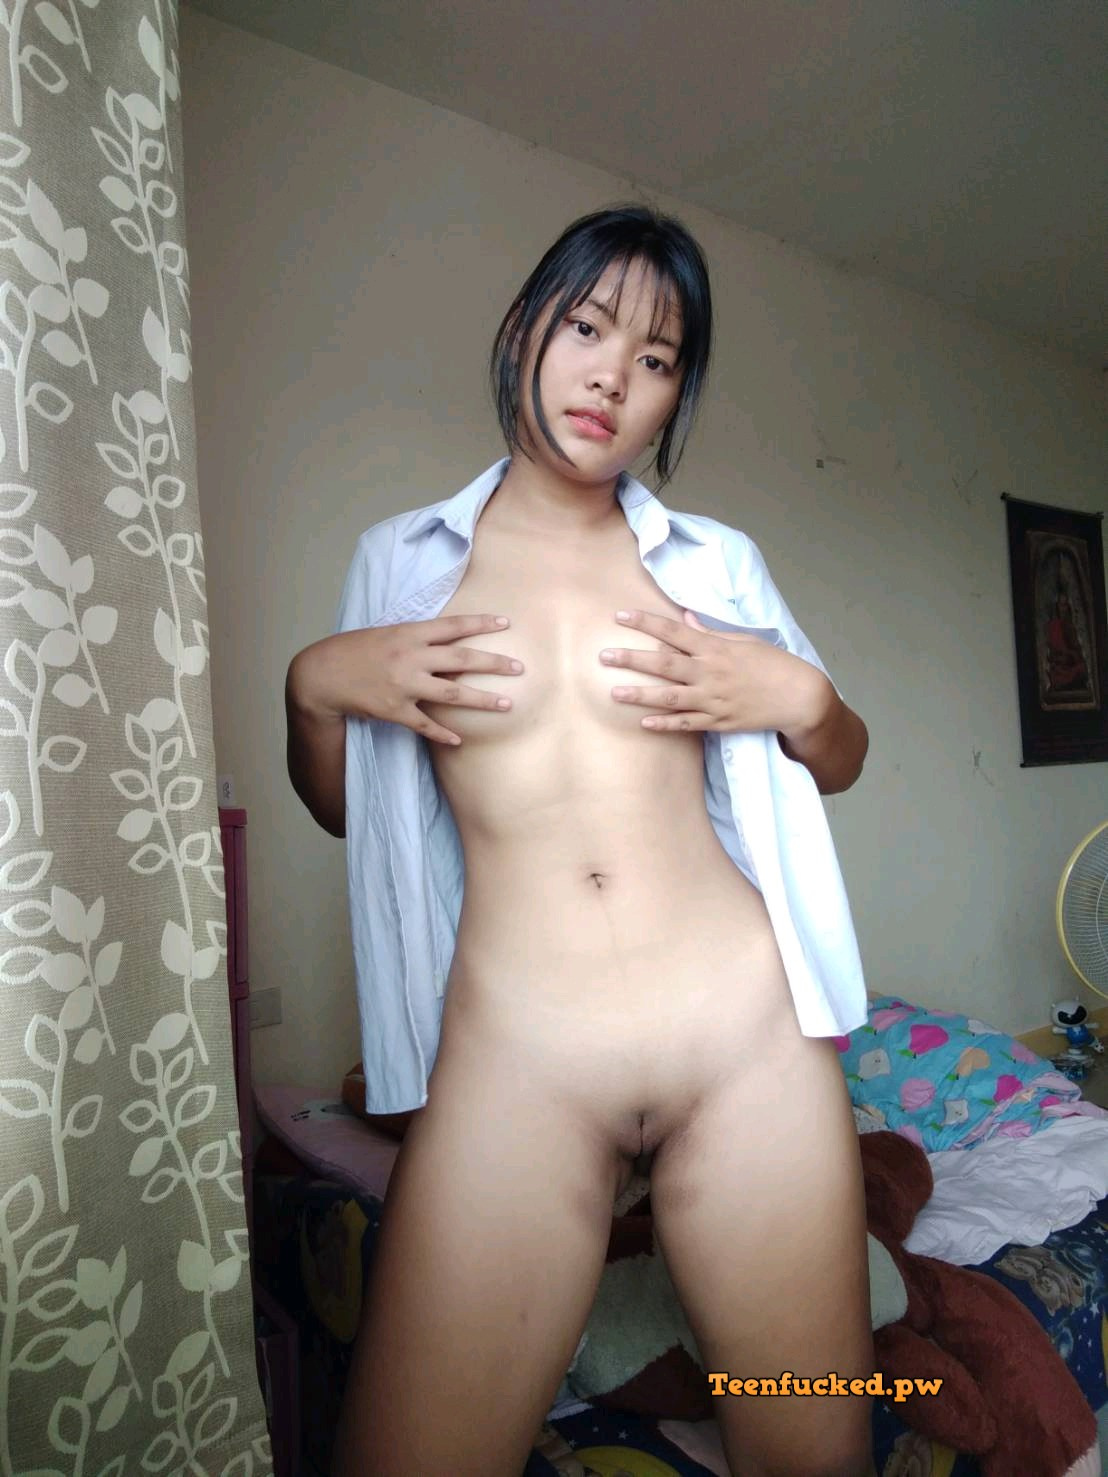 dvehw42Aa80 wm - Asian thai girl nude photo selfie pussy hole 2020 gg